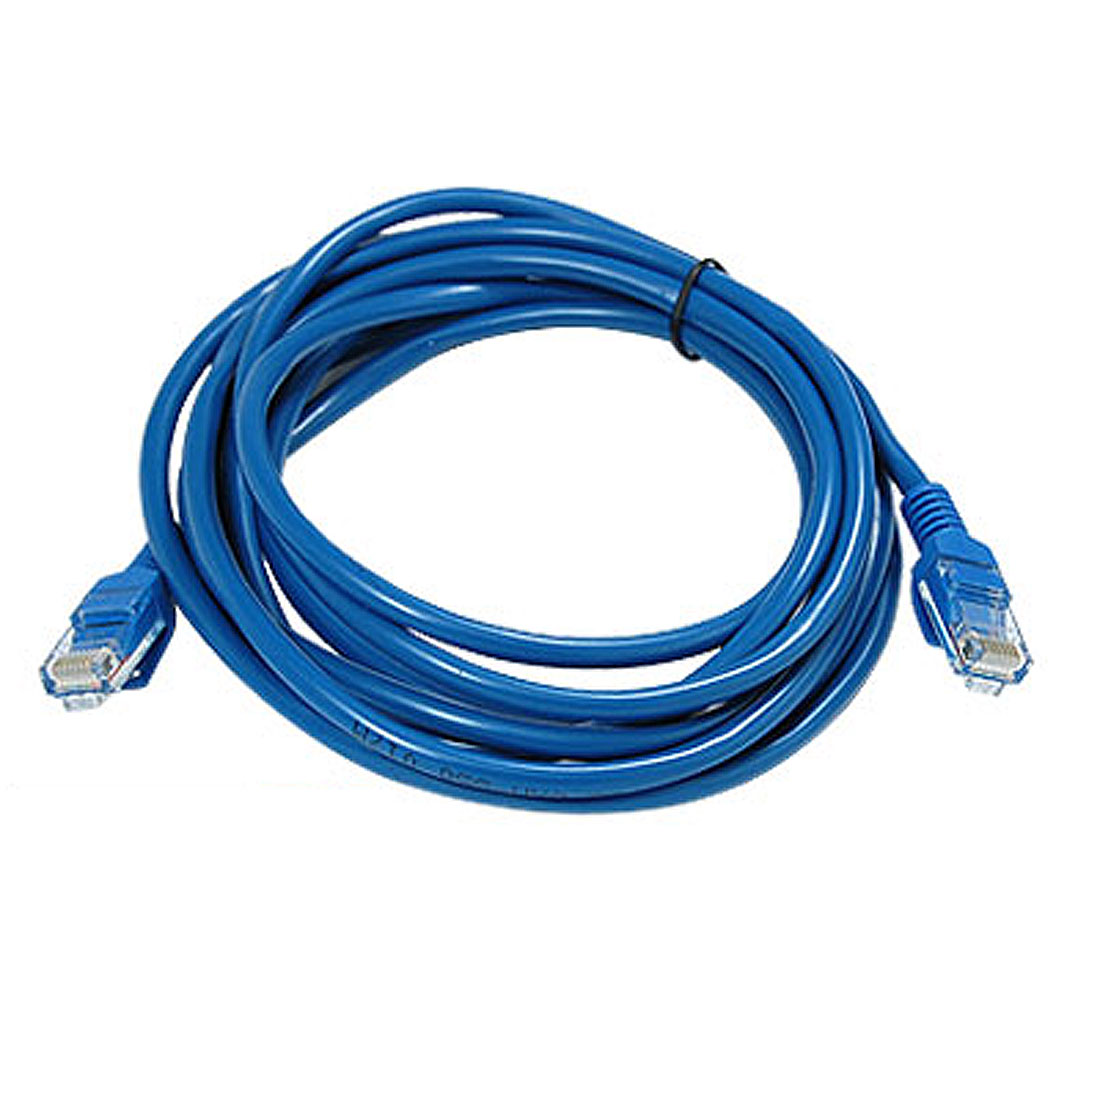 9.5 ft Feet 2.9M RJ45 CAT5E LAN Network Cable Blue for Ethernet Router Switch